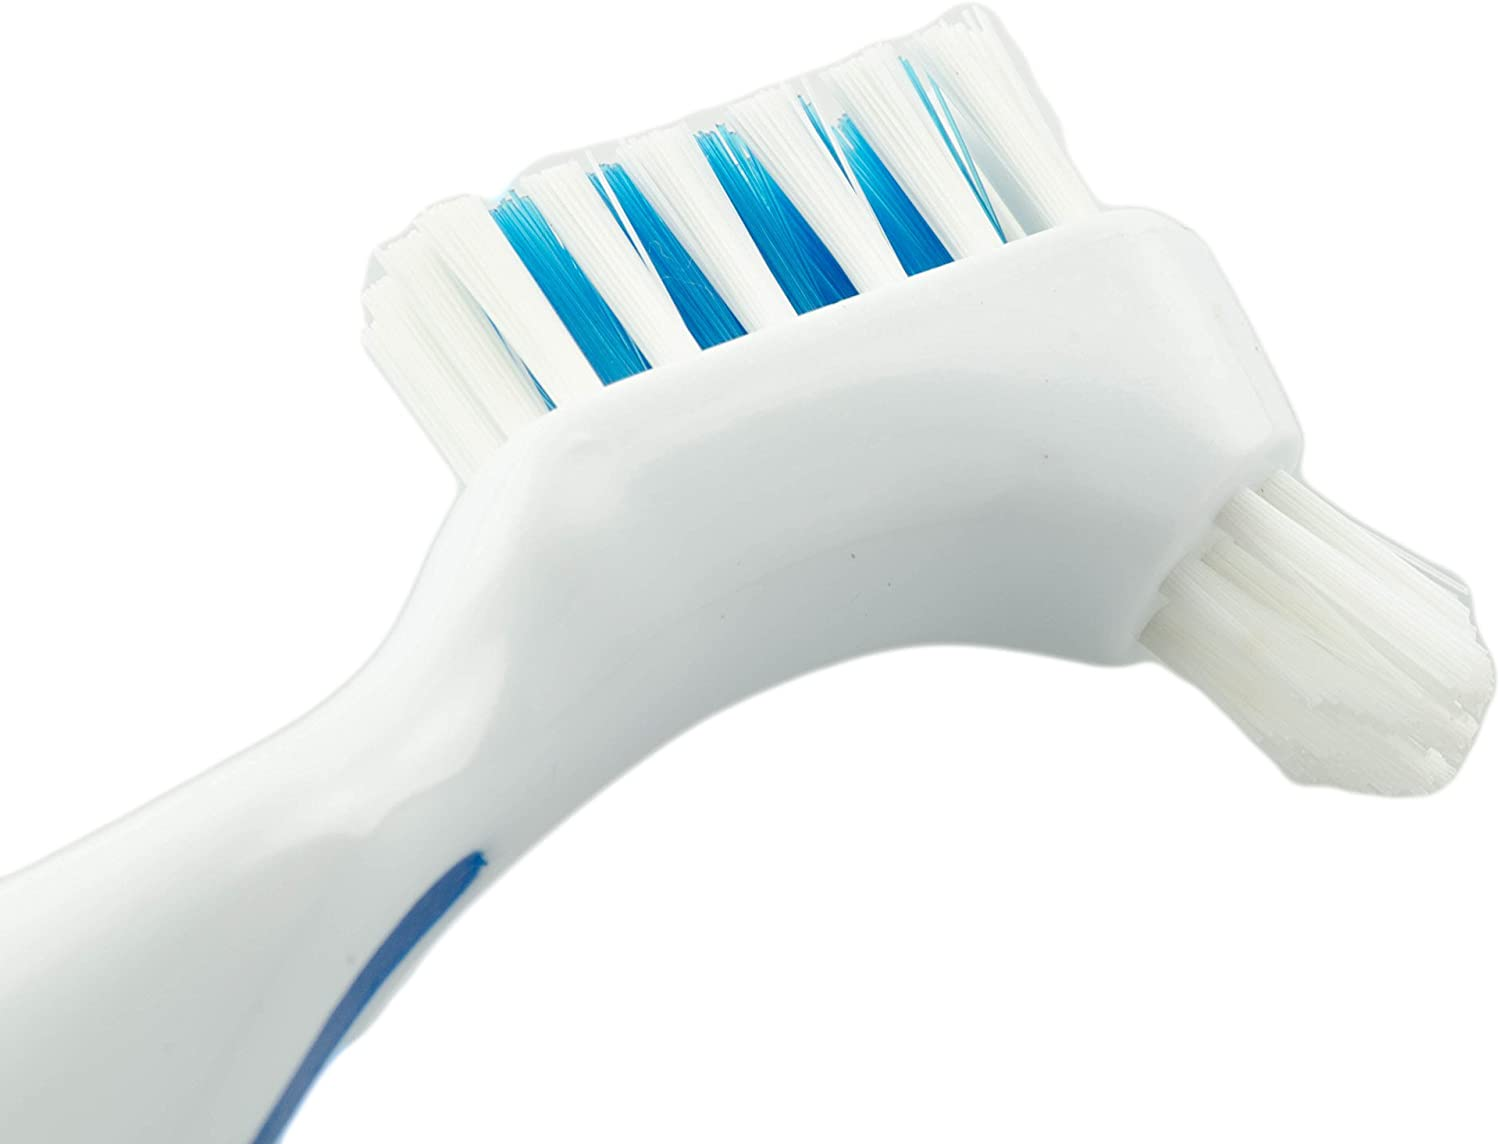 Koala Lifestyle Denture Cleaner Brushes with Covers | Cleaning Toothbrush for Dentures, False Teeth, Night Guards for Teeth Grinding, Dental Devices, and Mouth Guards | 3 Pieces, White / Blue: Health & Personal Care